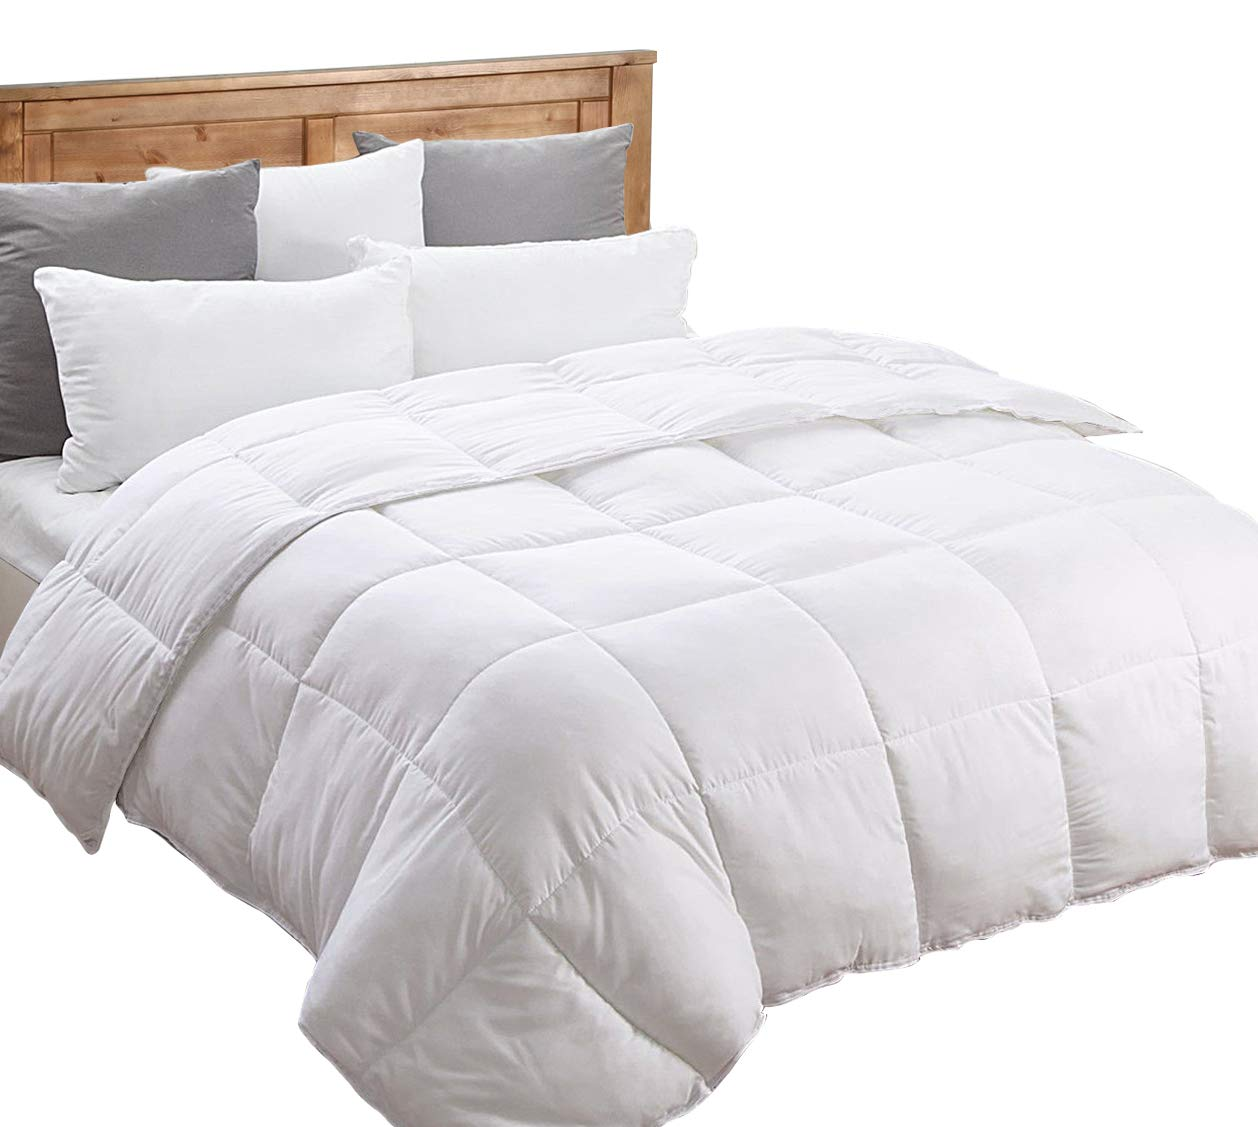 Queen Comforter Set (White, Queen) Duvet Insert Grey- Down Alternative Comforter, Hypoallergenic, Plush Siliconized Fiberfill, Box Stitched, Protects Against Dust (Full/Queen 88-by-88 inch,White)